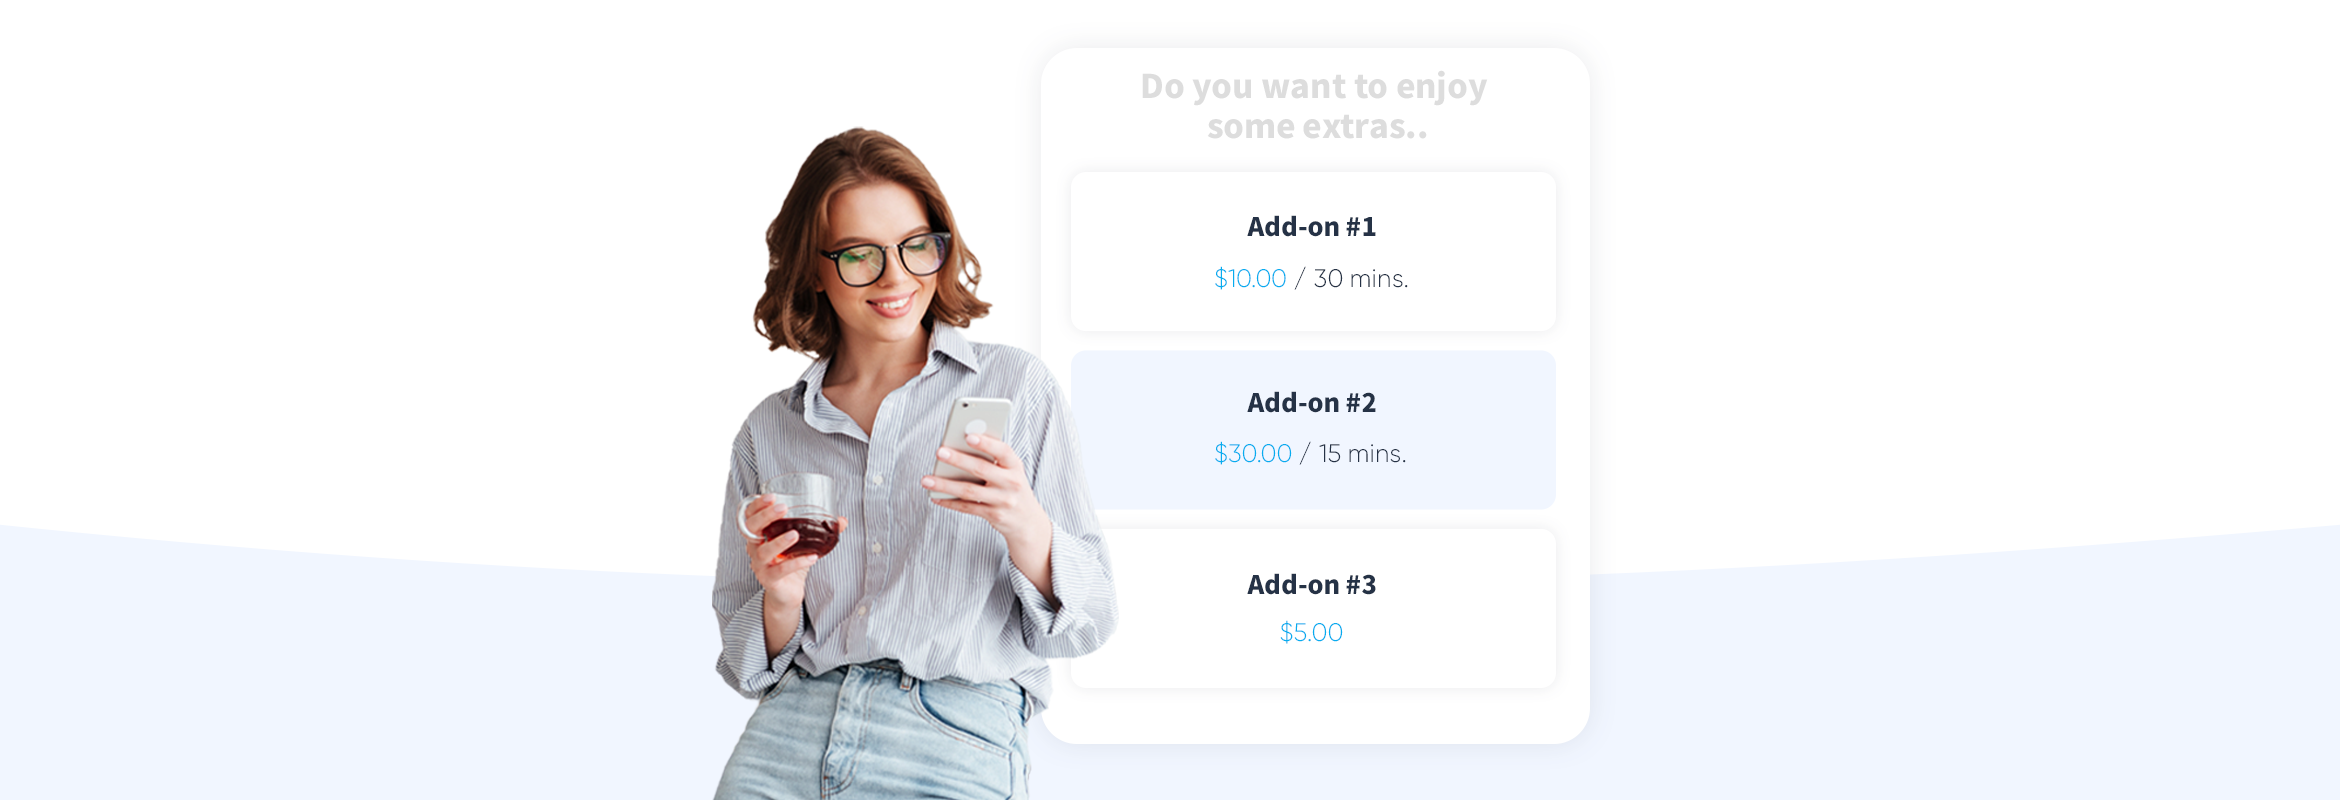 Service Add-ons for improved customer experience